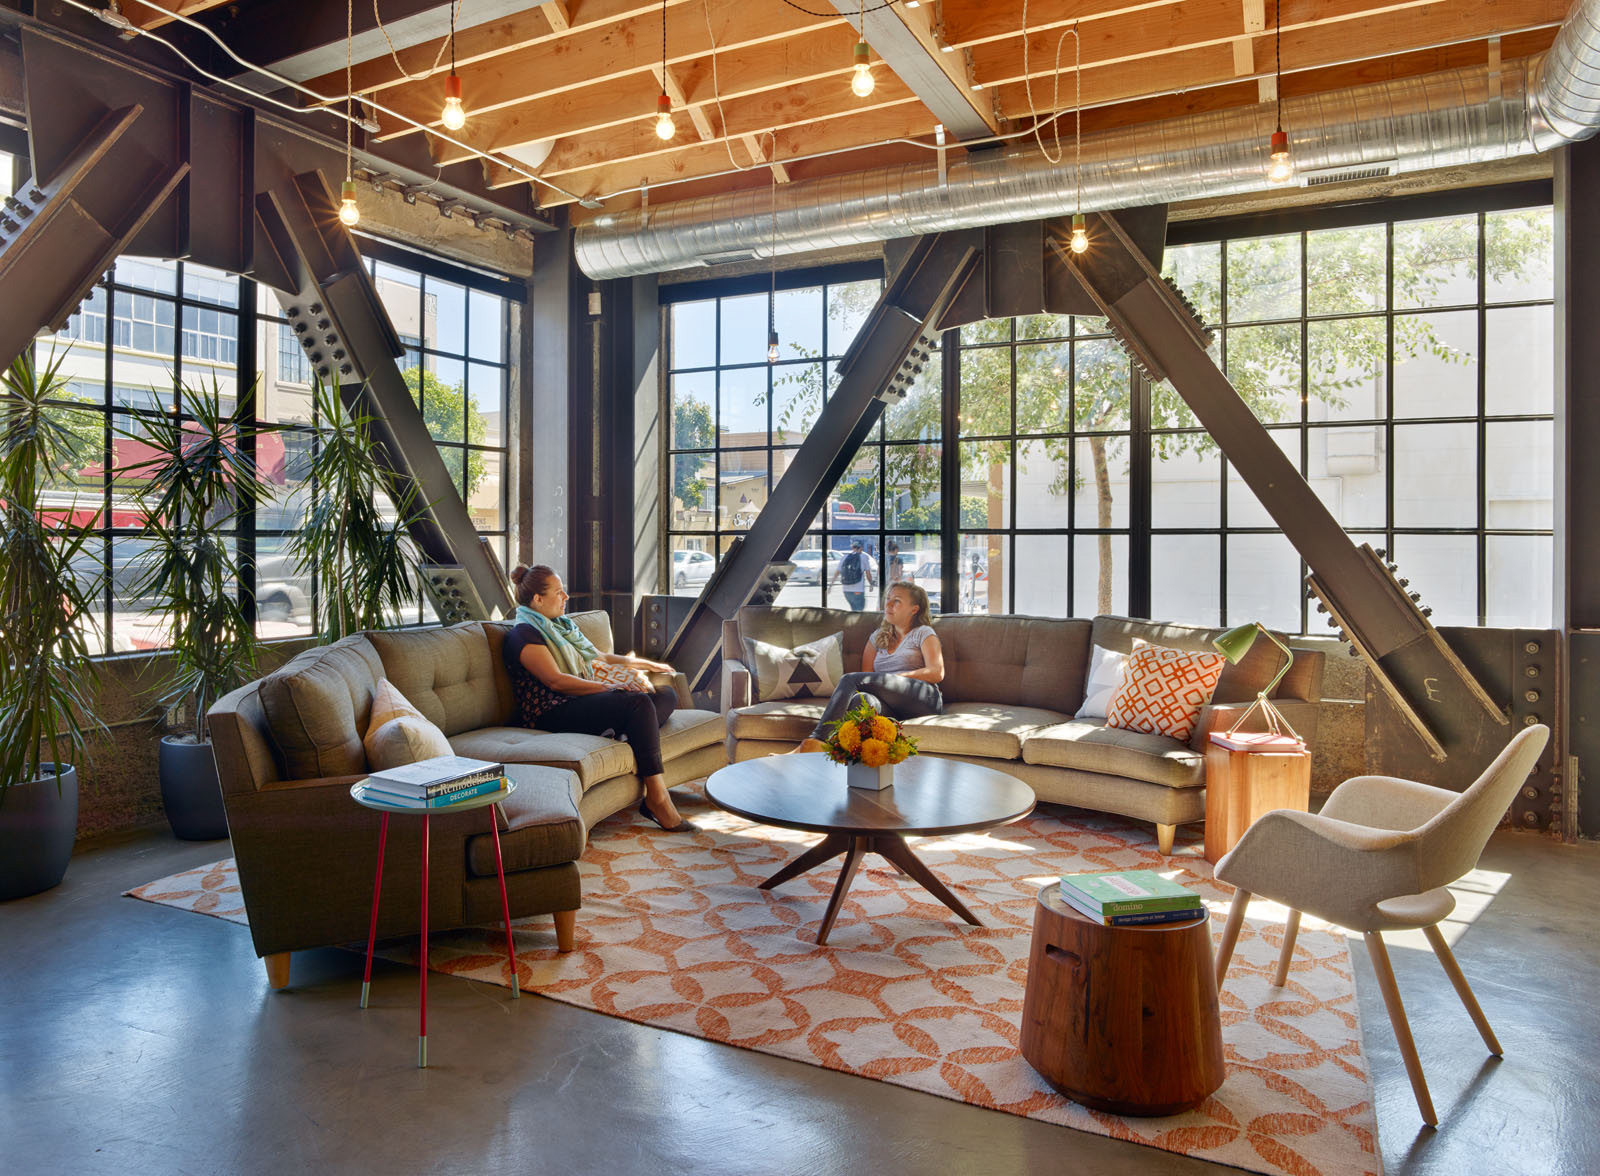 Thumbtack's SF office lobby looks like a comfortable living room